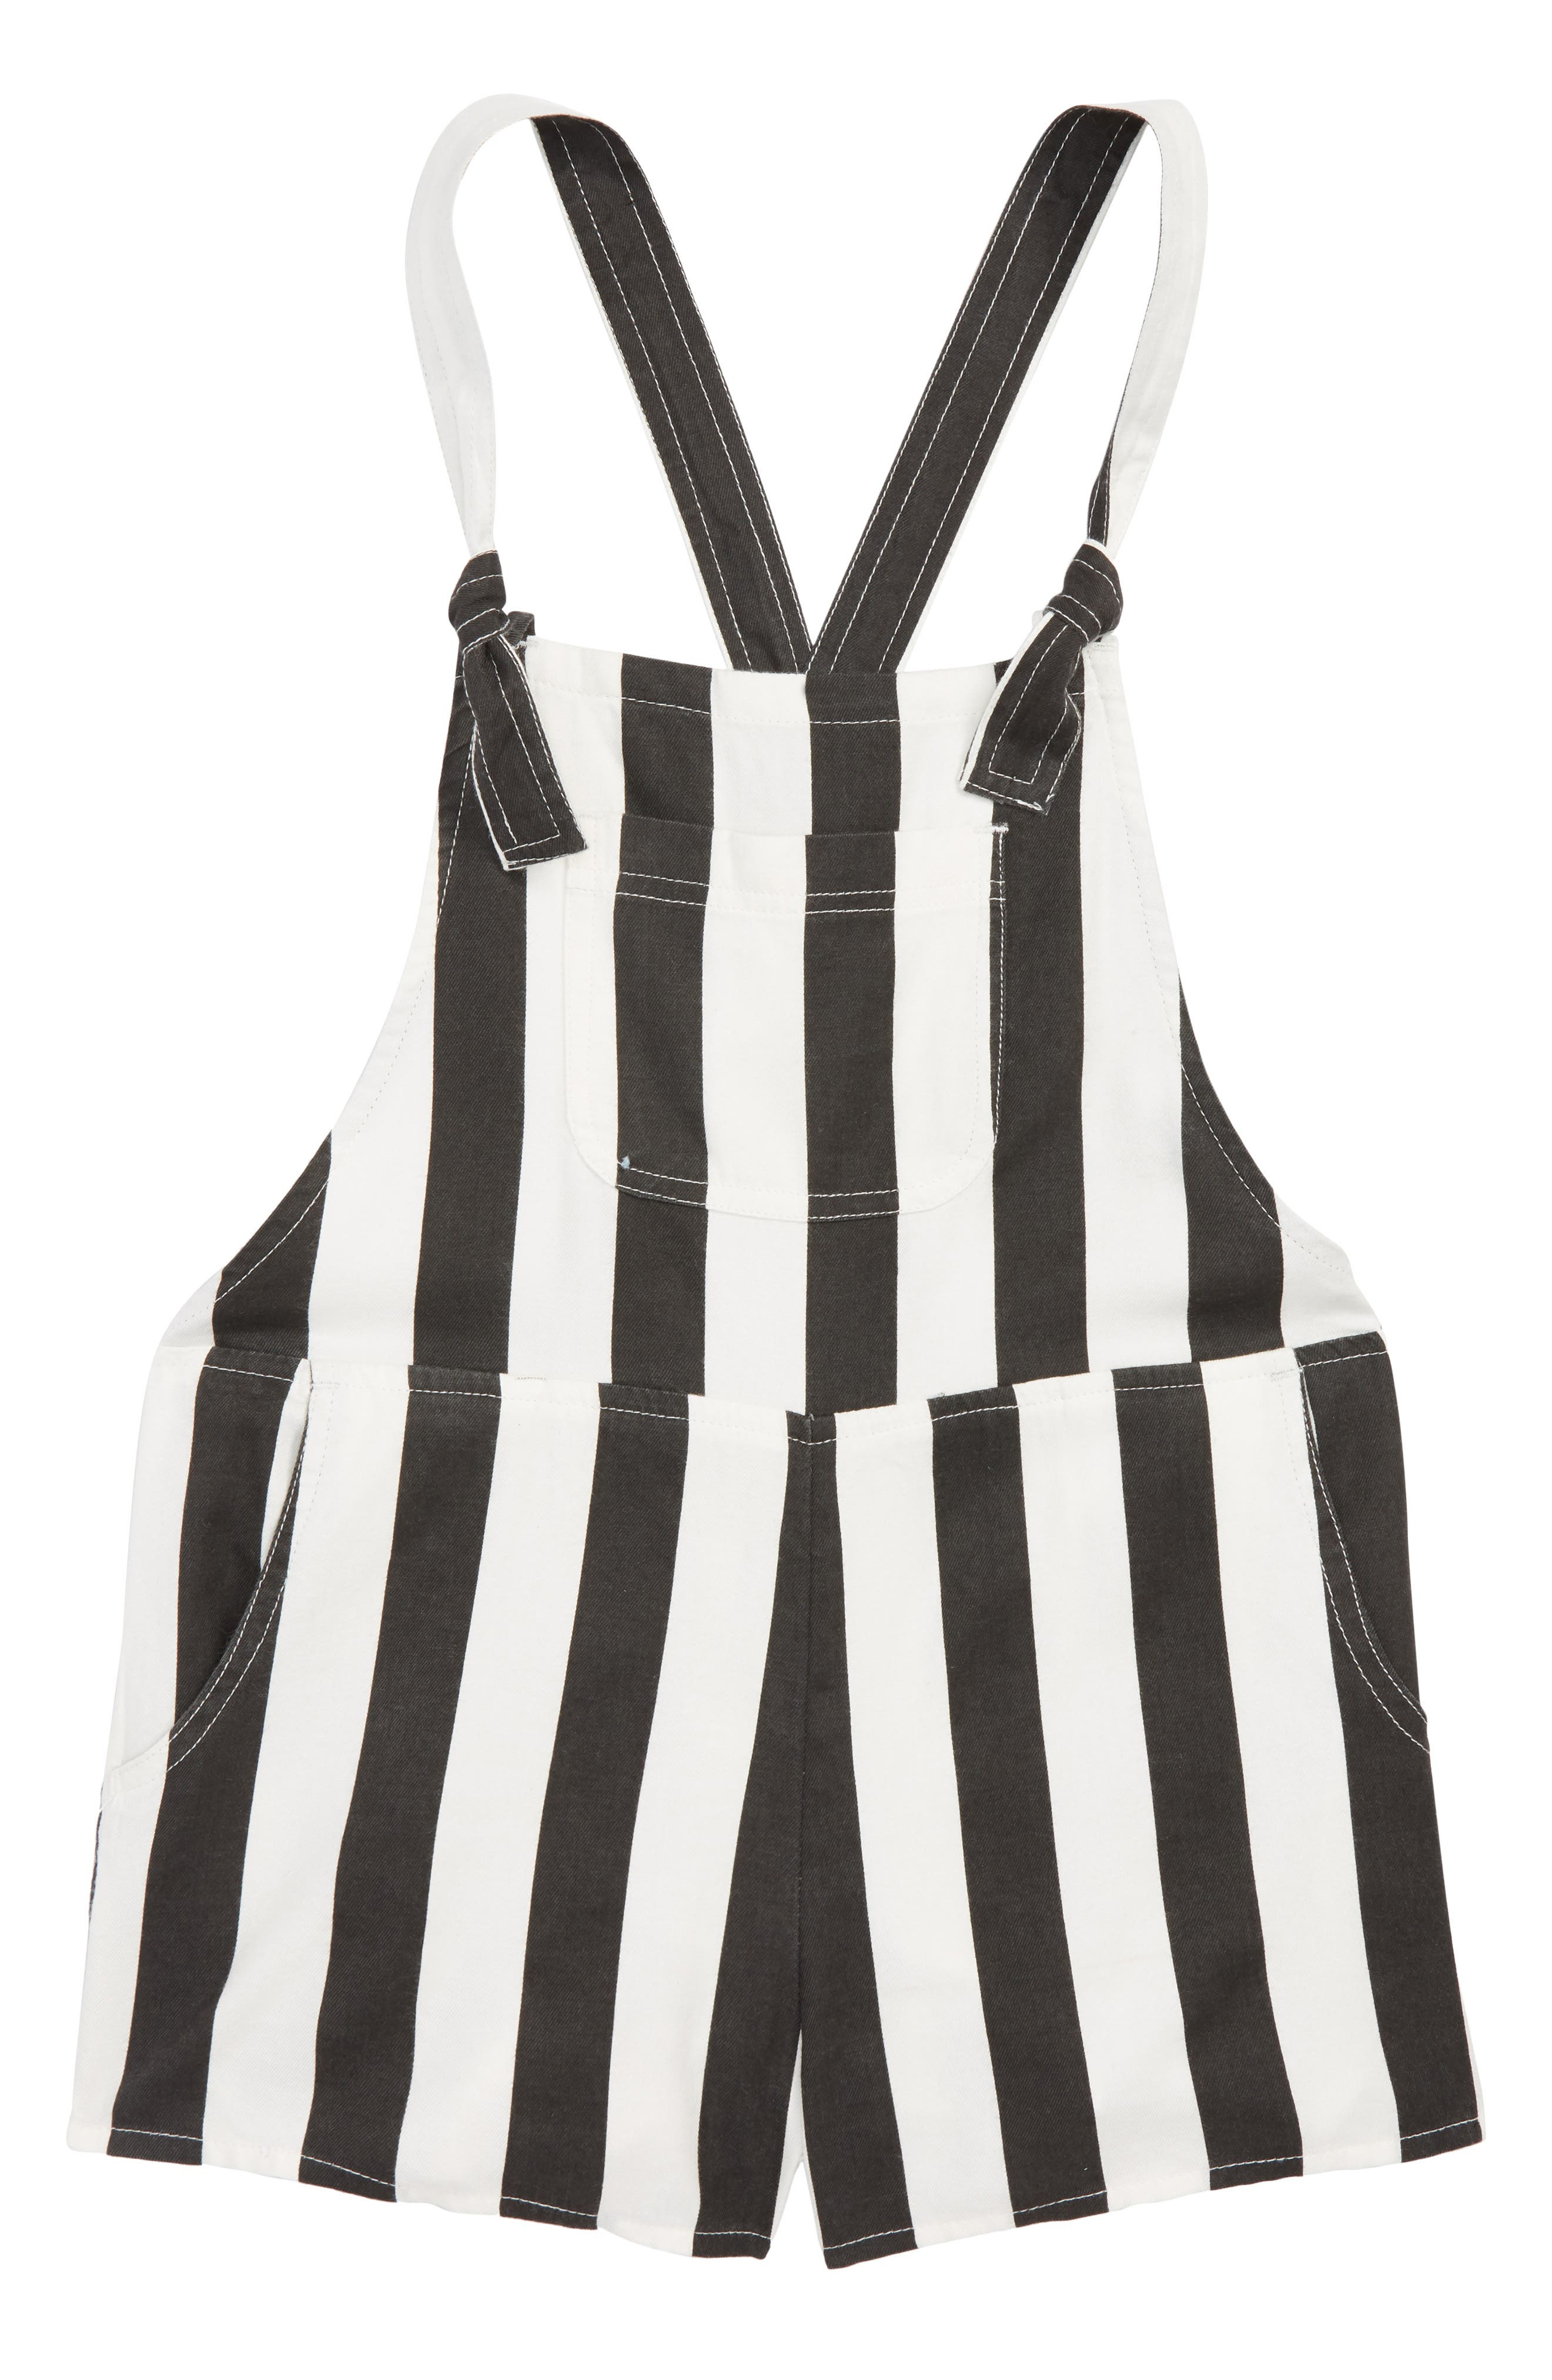 Roamin Stripe Short Overalls,                             Main thumbnail 1, color,                             001